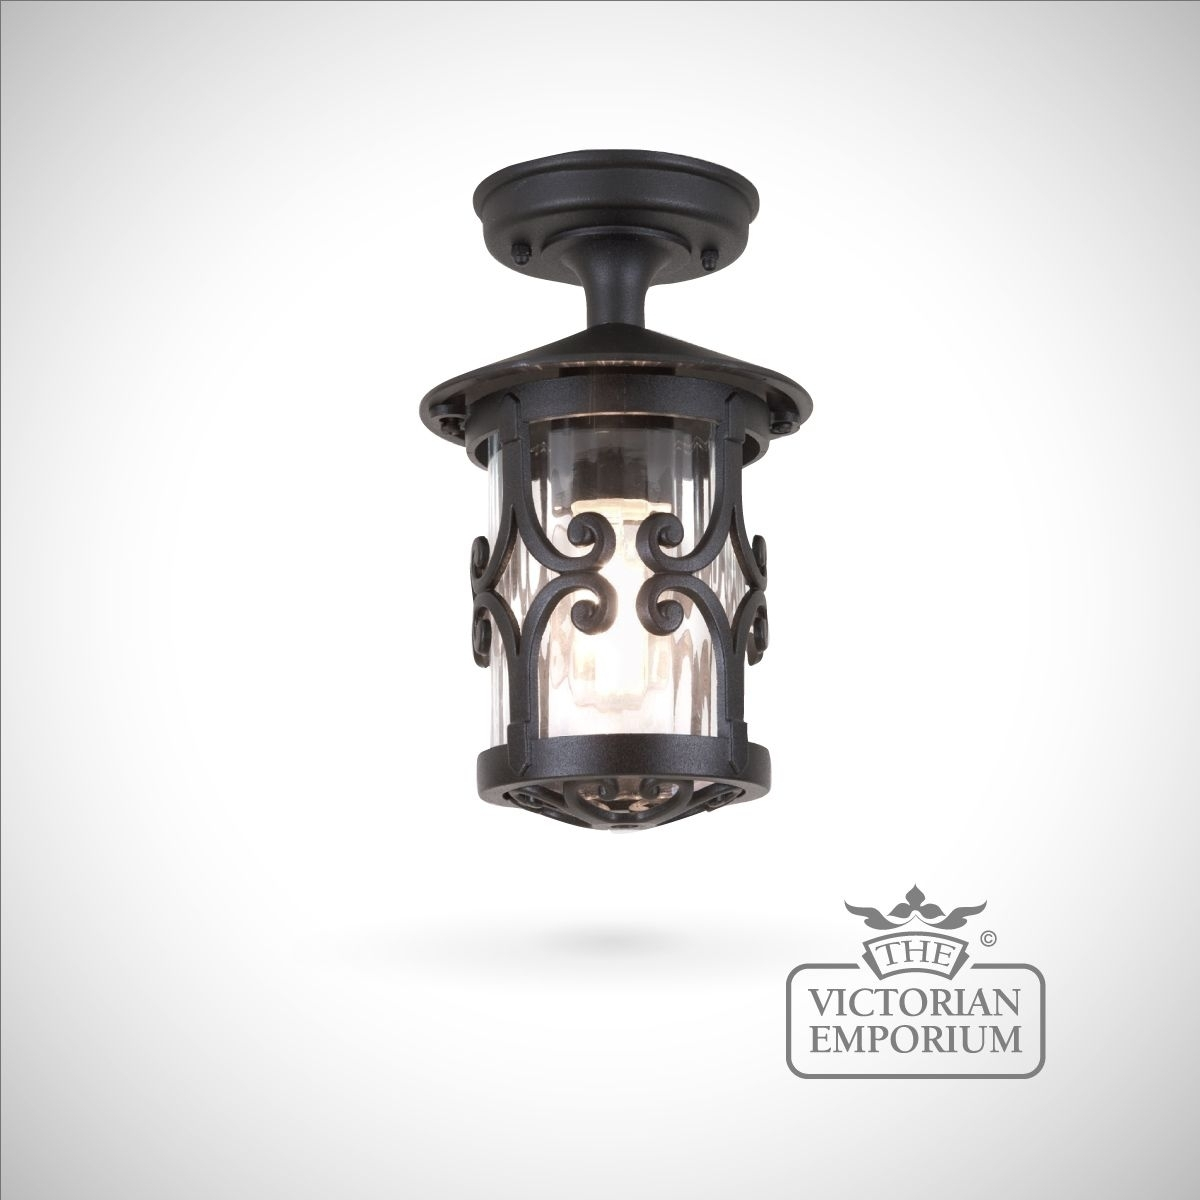 Hereford Rigid Tube Lantern | Exterior Ceiling Lights With Regard To Decorative Outdoor Ceiling Lights (#6 of 15)